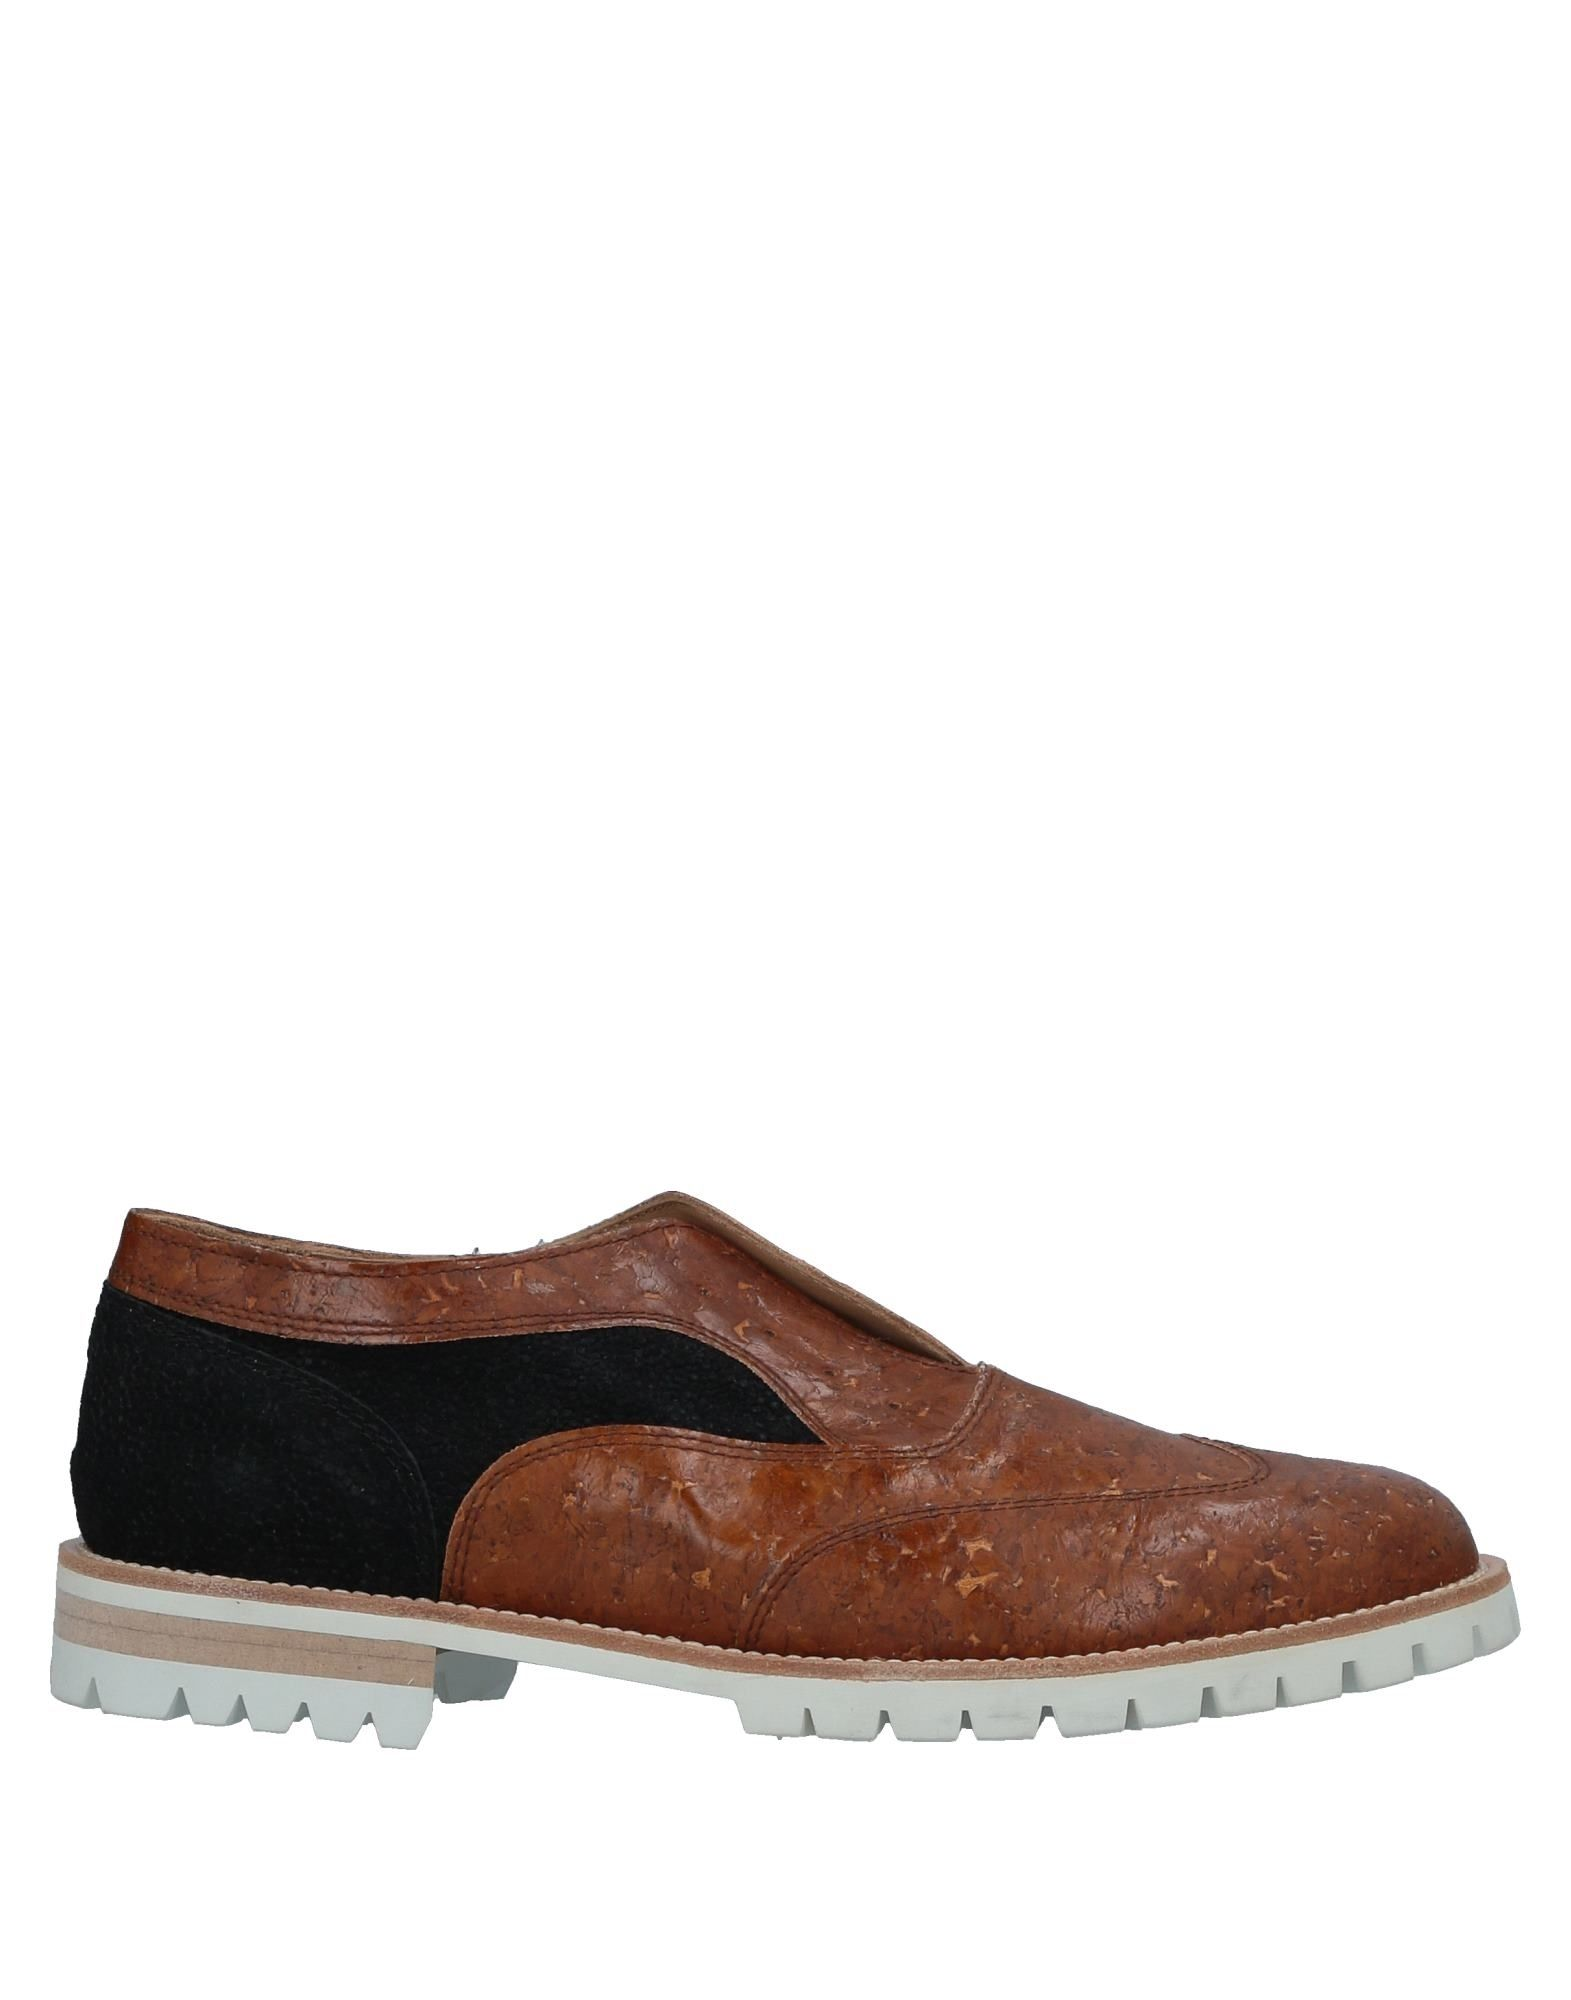 L'f Shoes Loafers - Men L'f Shoes Loafers online 11534579GP on  Australia - 11534579GP online 66046e